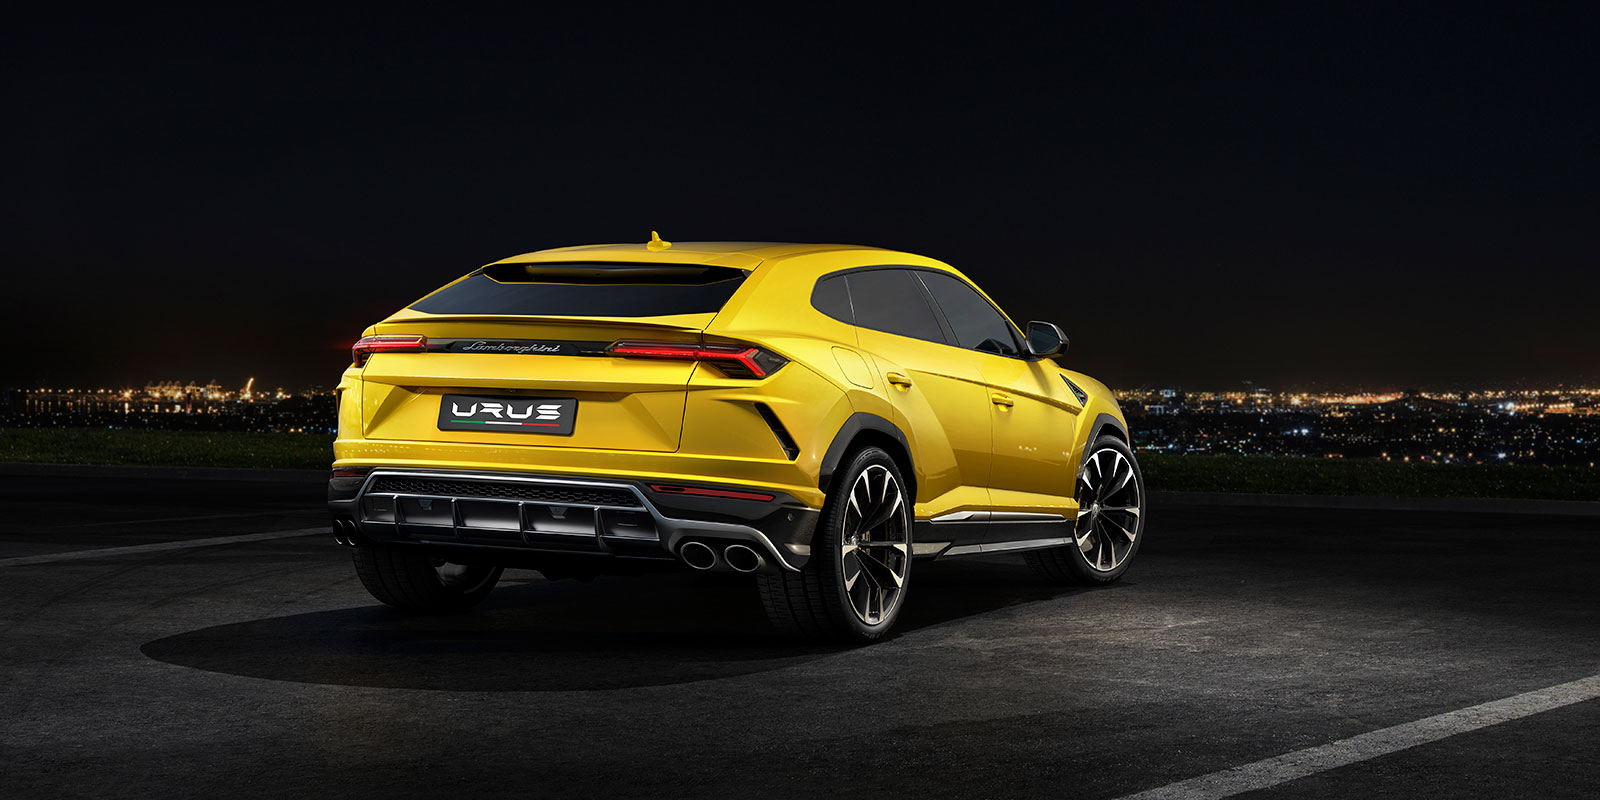 Lamborghini Urus - The World's First Super Sport Utility Vehicle image 5